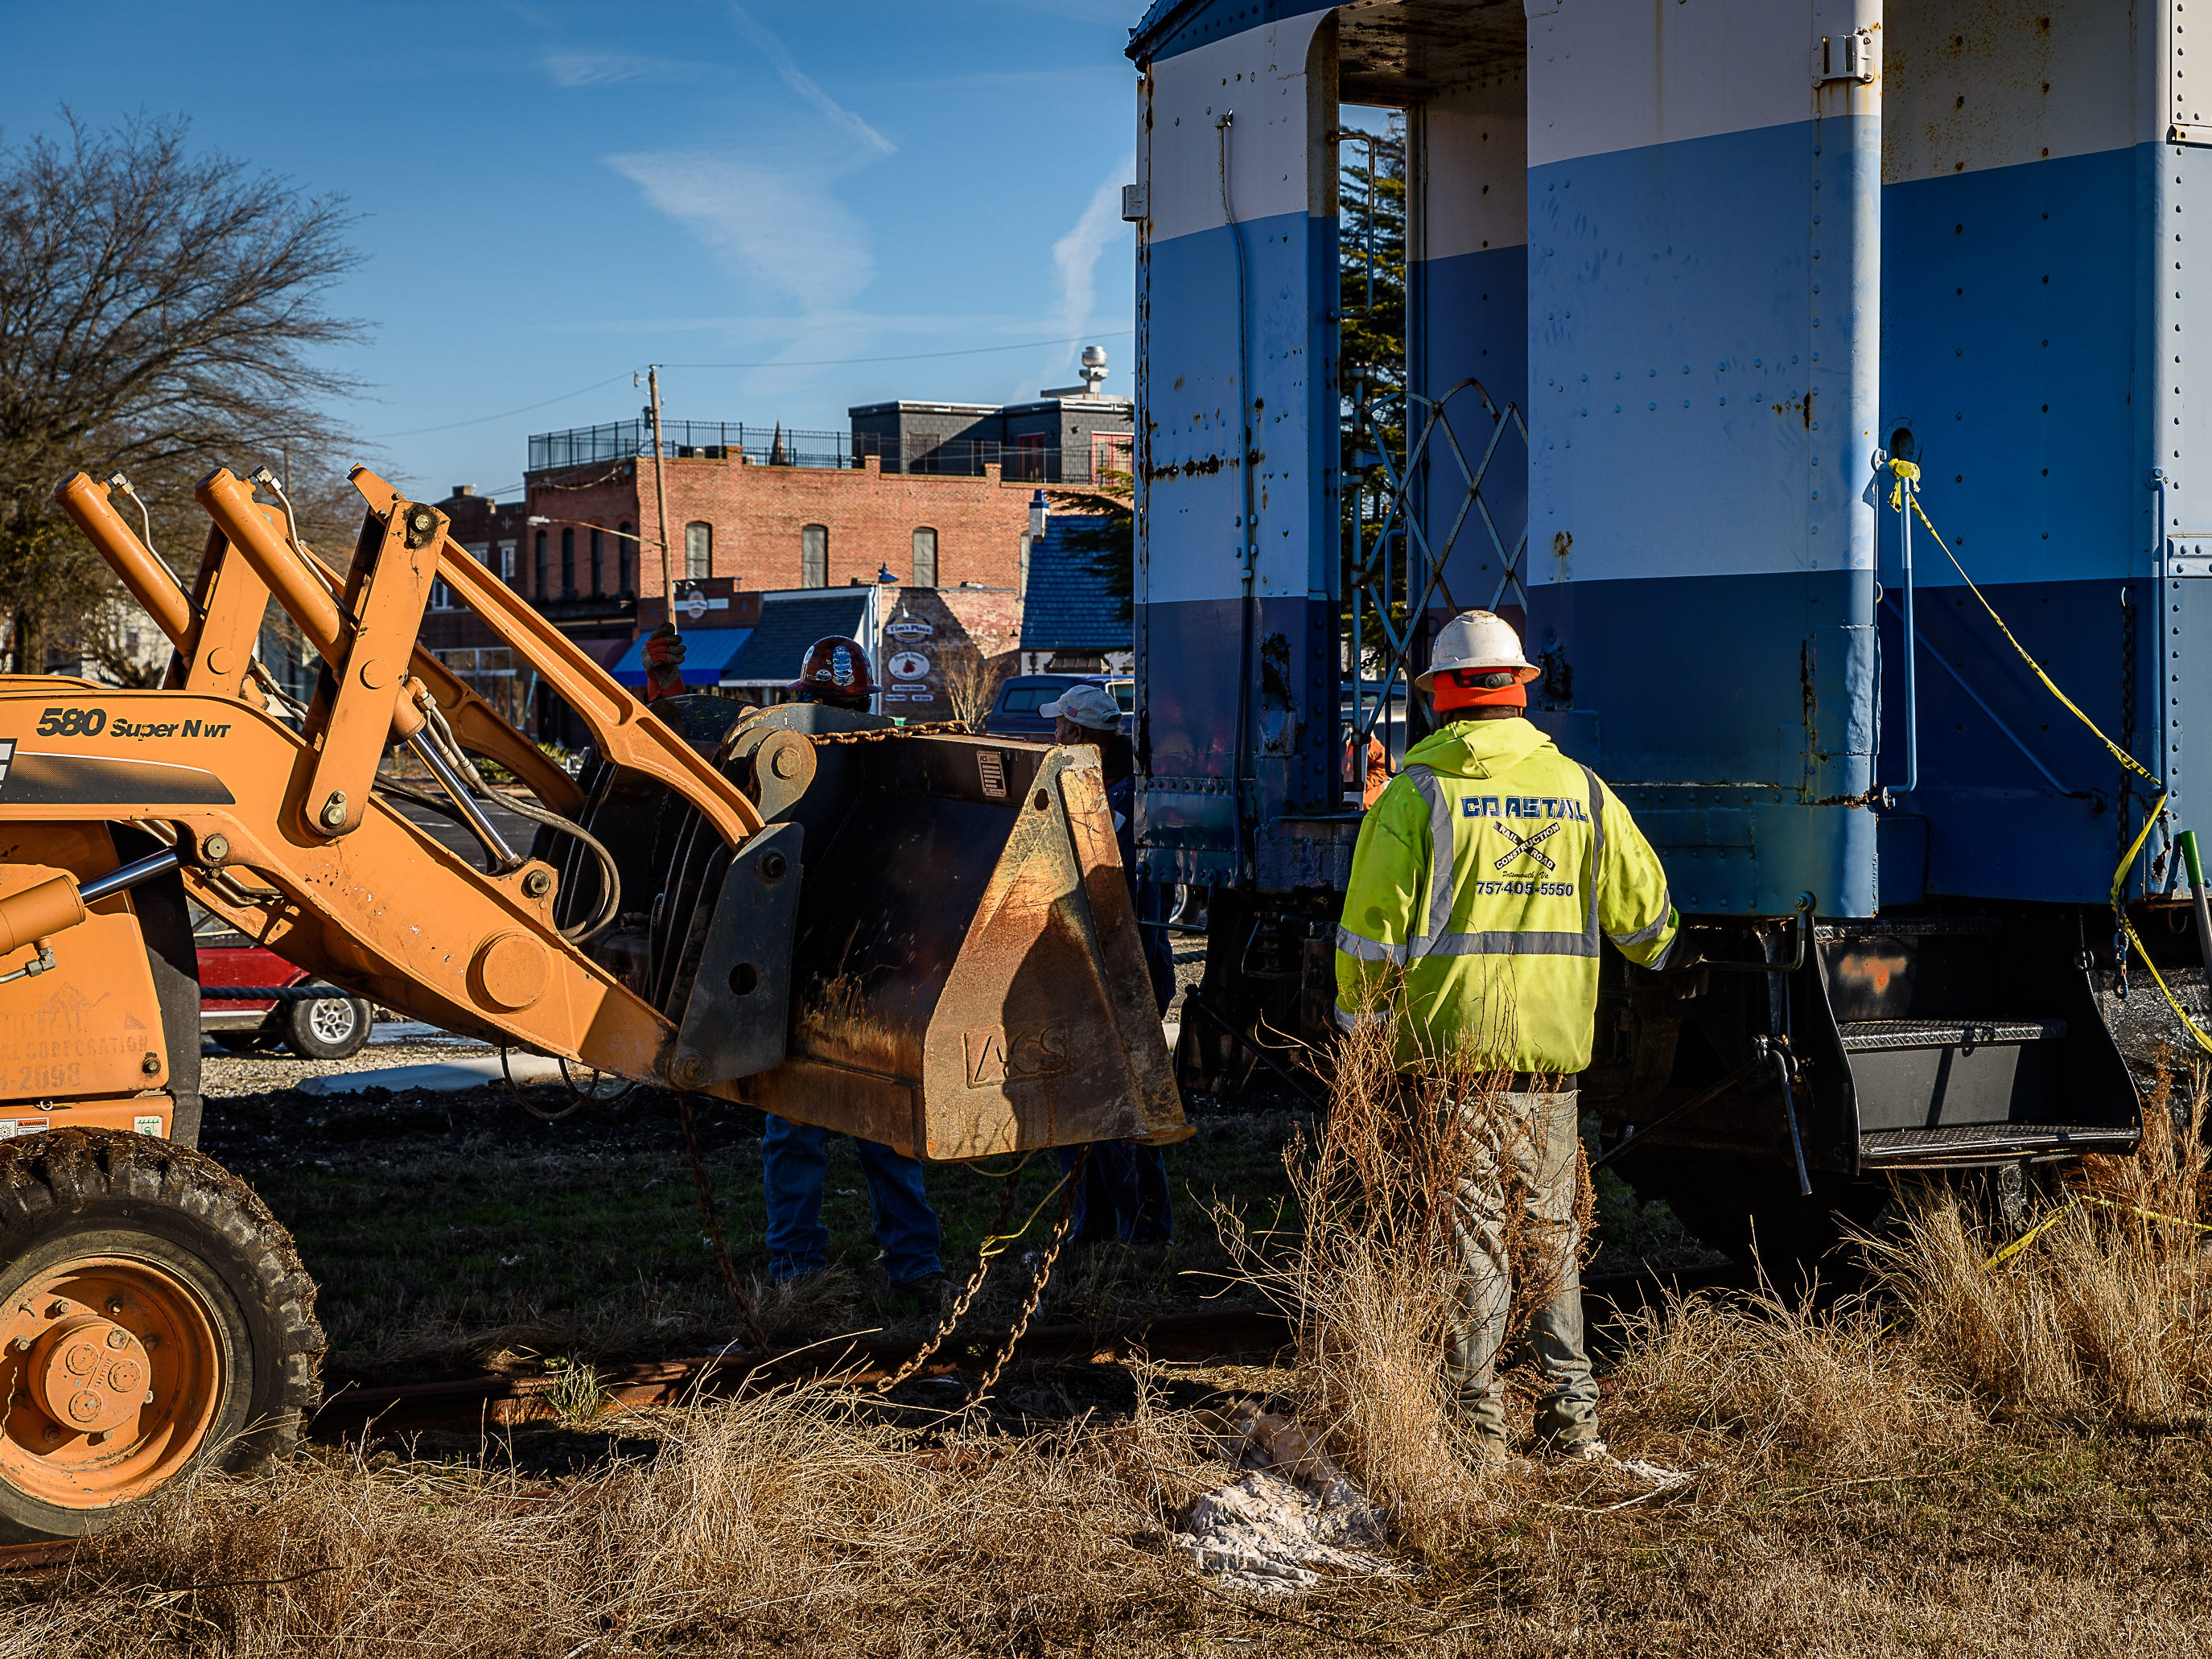 Once separated, an earthmover is used to push the railway car to its new location in Cape Charles.